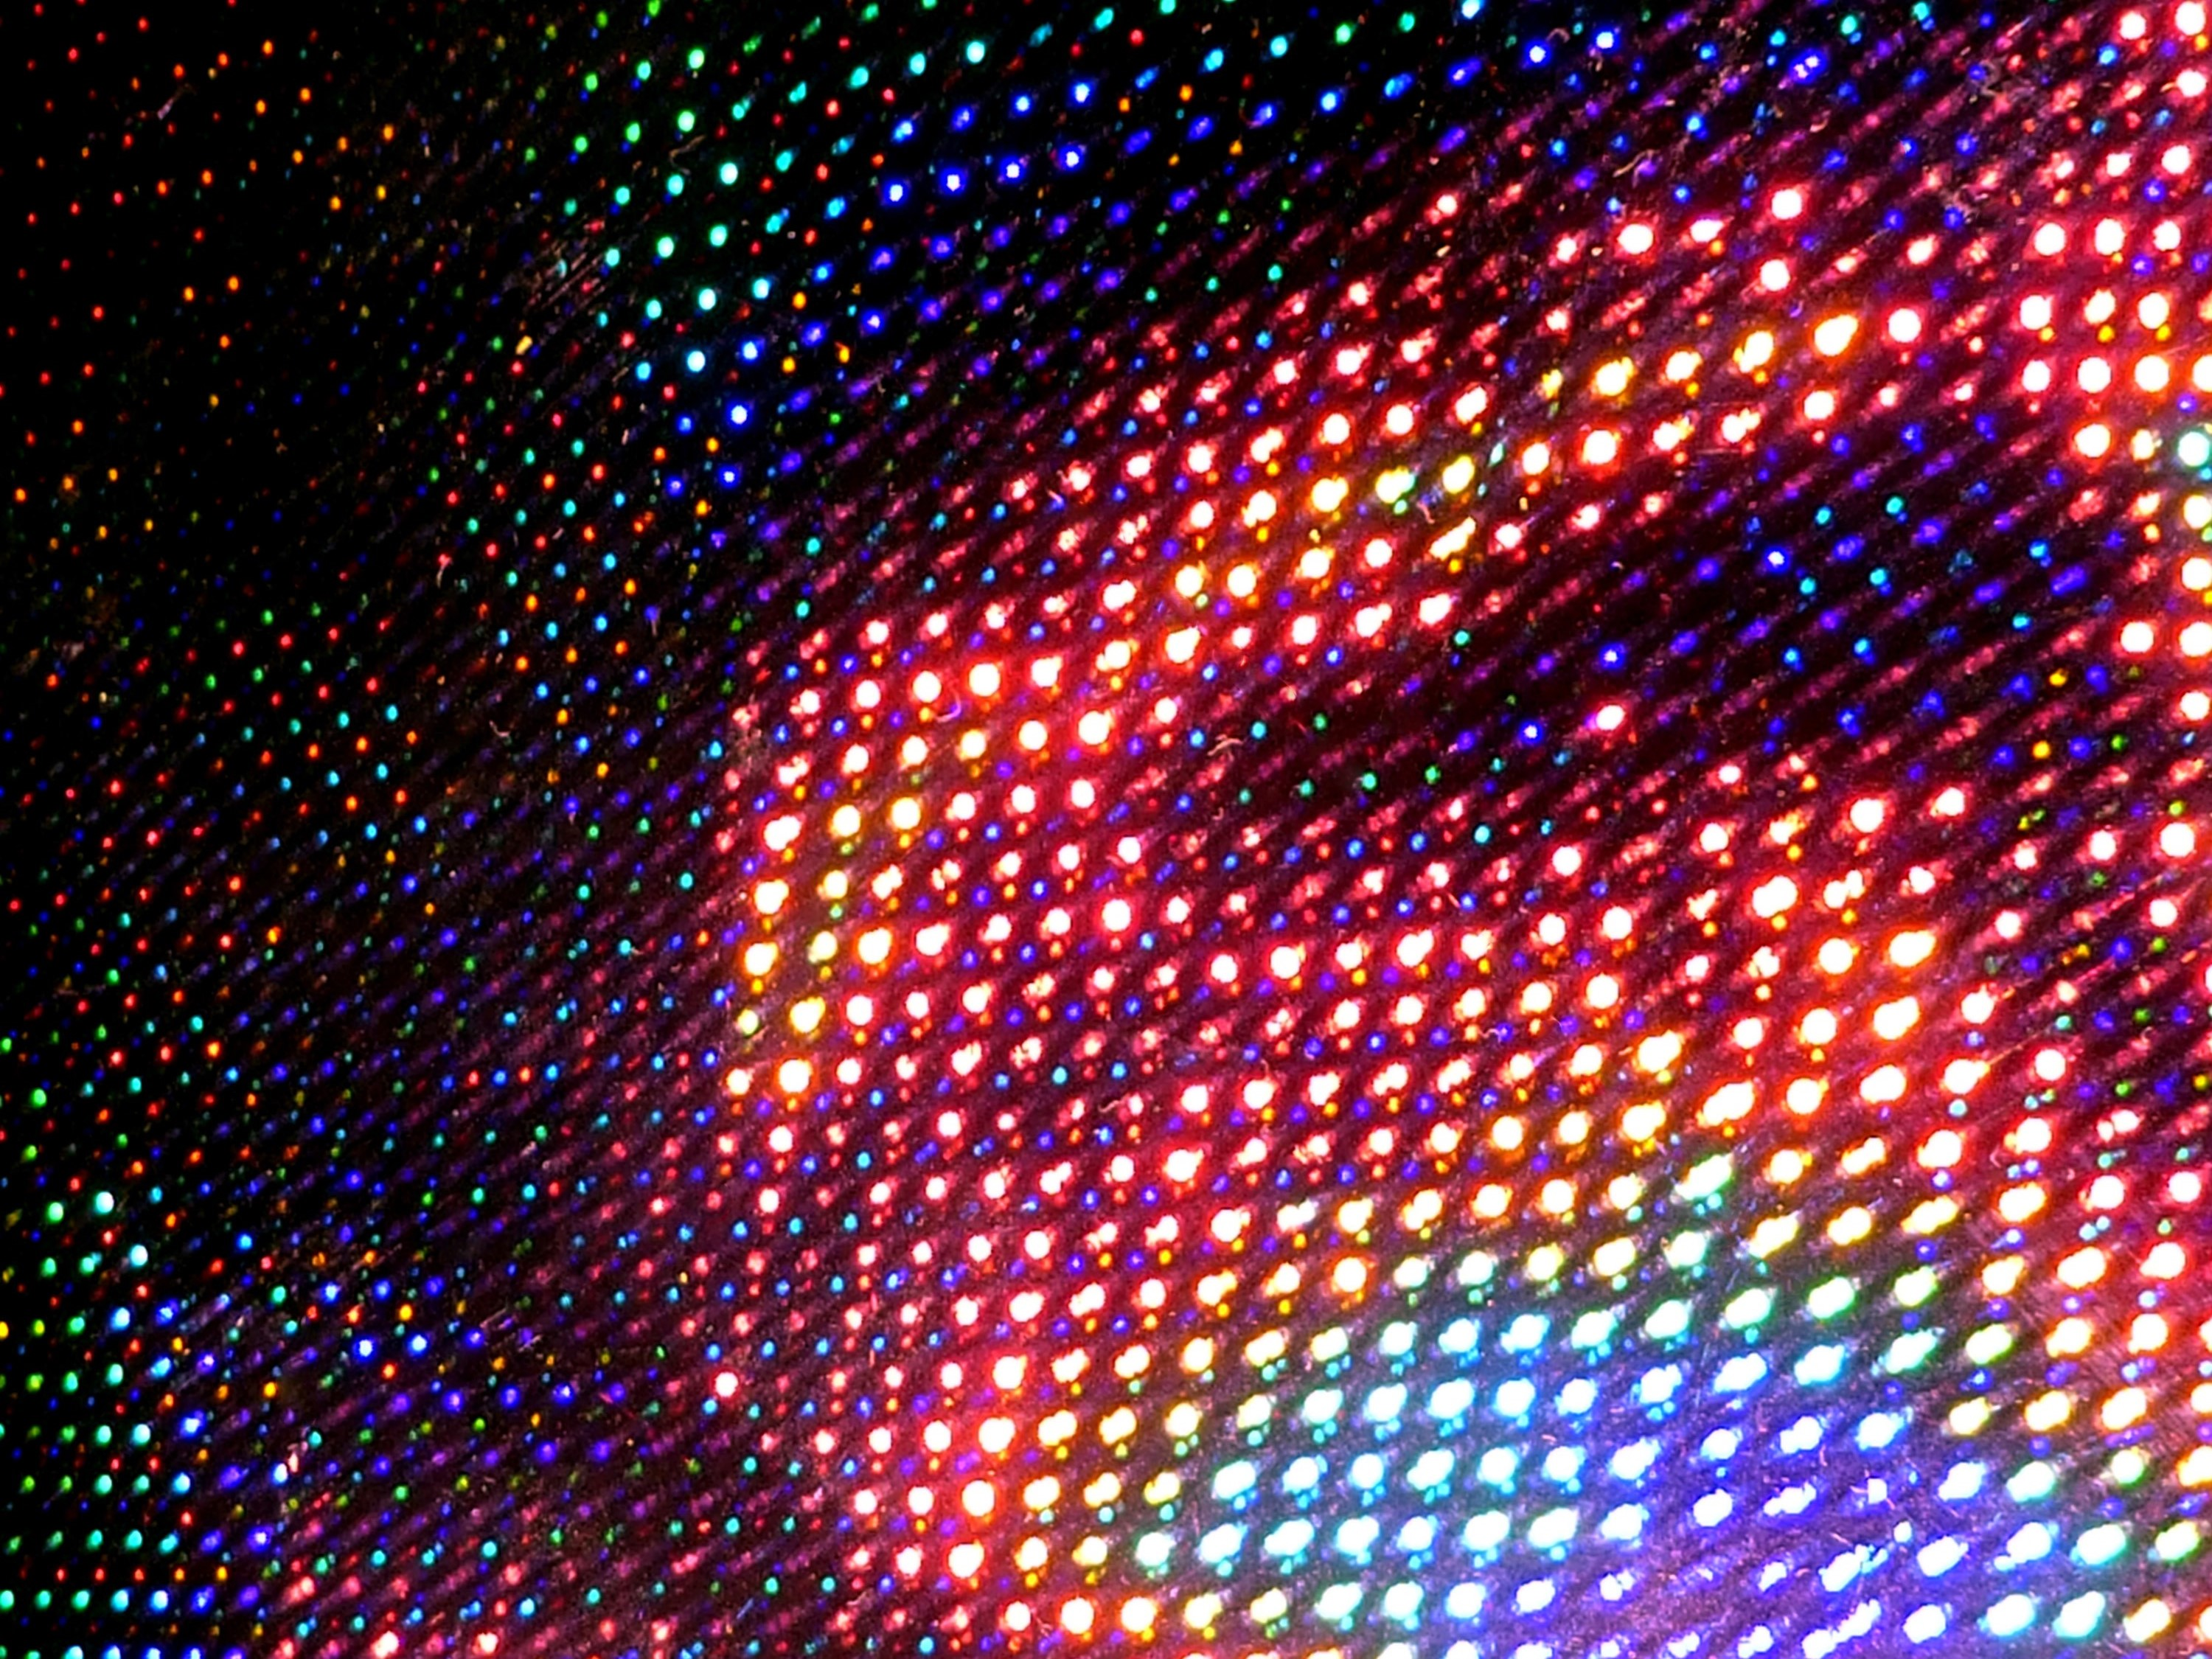 colourful pixels of light illuminated on a dark backdrop with noise and grain